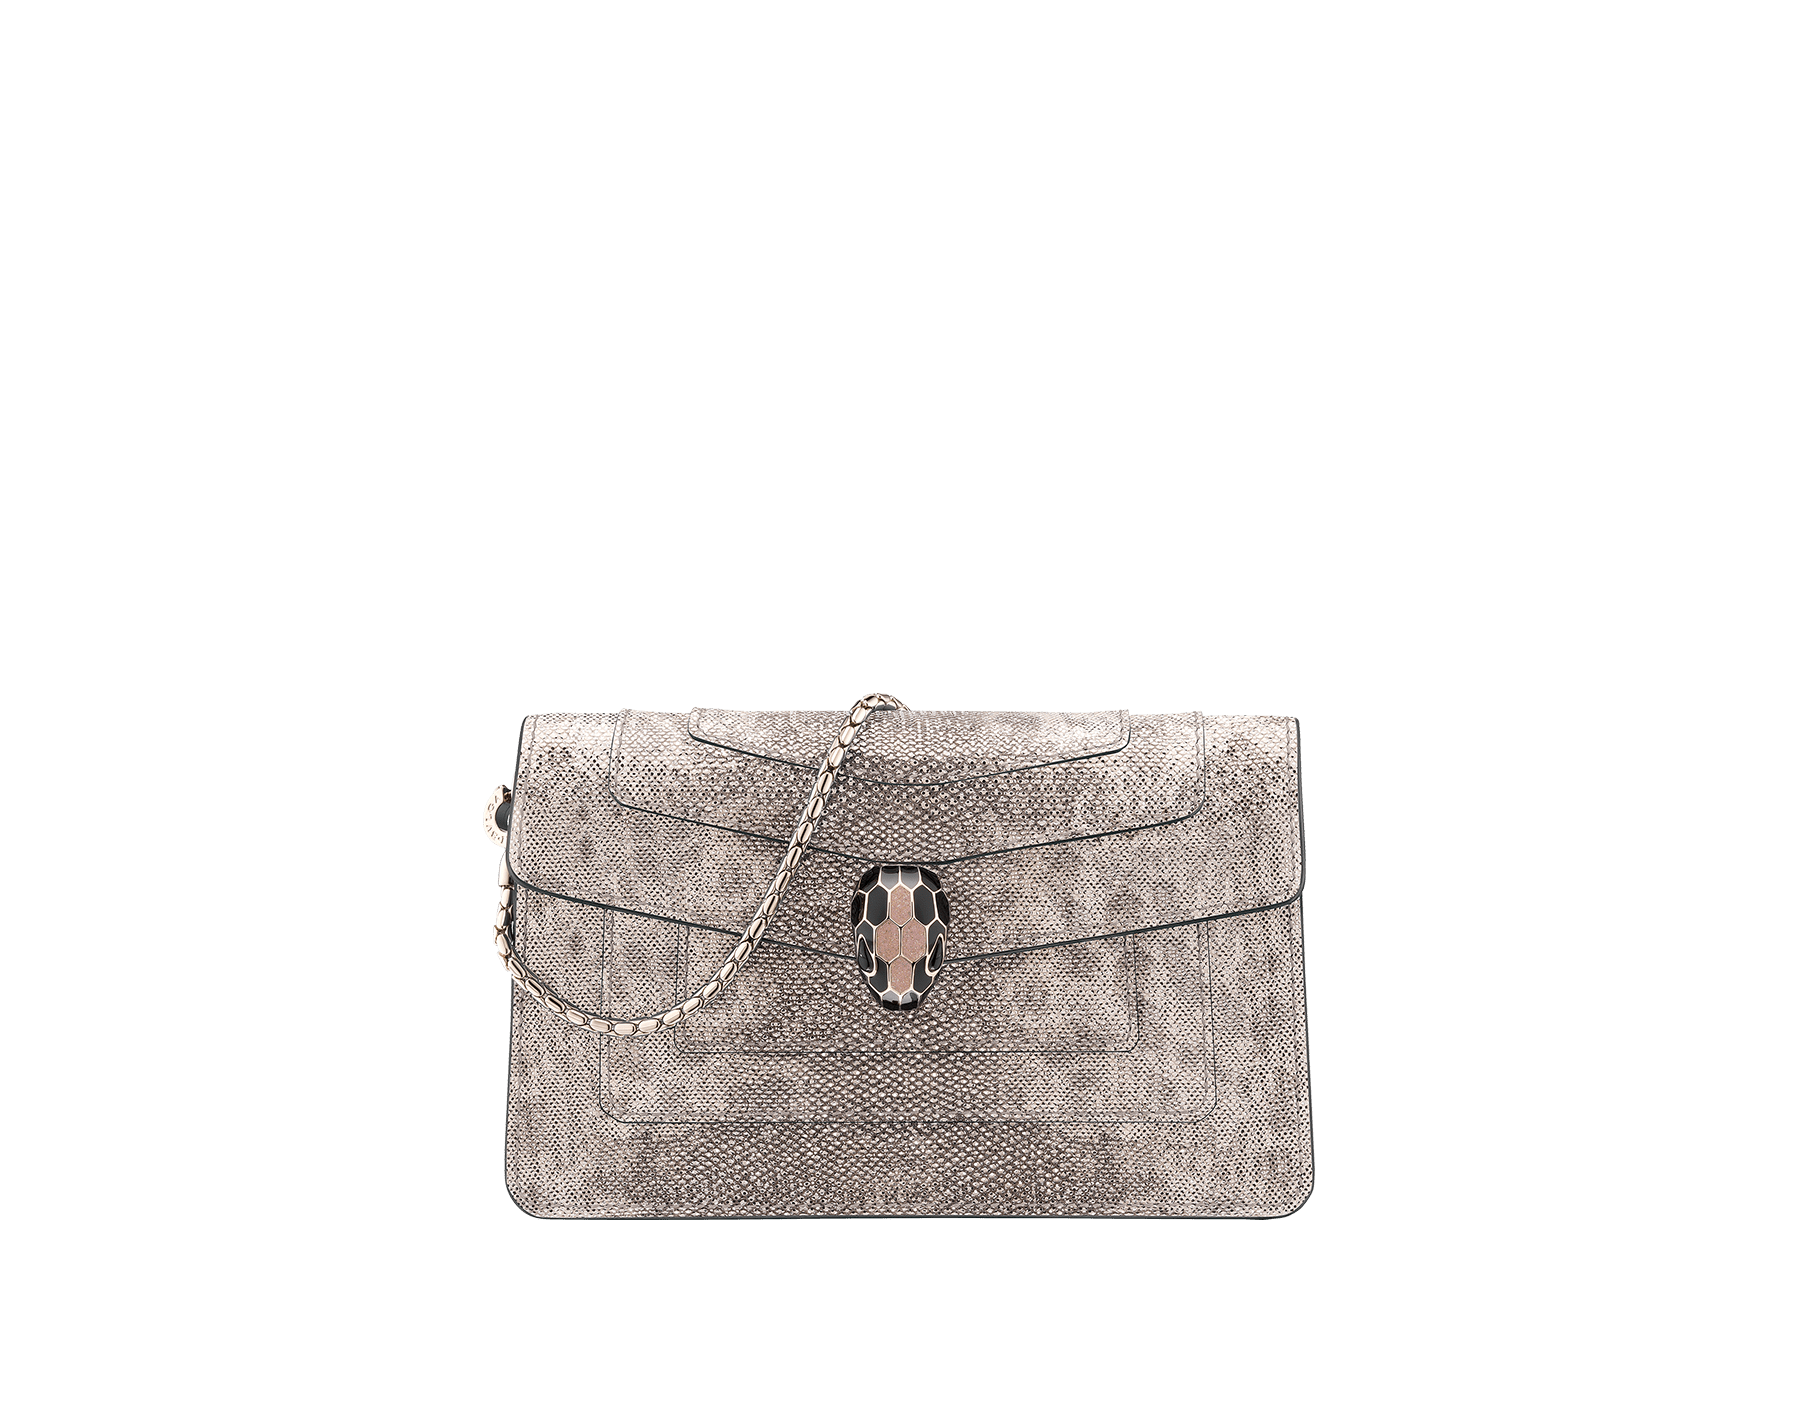 Serpenti Forever mini bag crafted in precious crystal rose metallic karung skin and carmine jasper calf leather, with brass light gold plated hardware. Iconic snakehead stud closure enameled in black and glitter silver and finished with black onyx eyes 287241 image 1